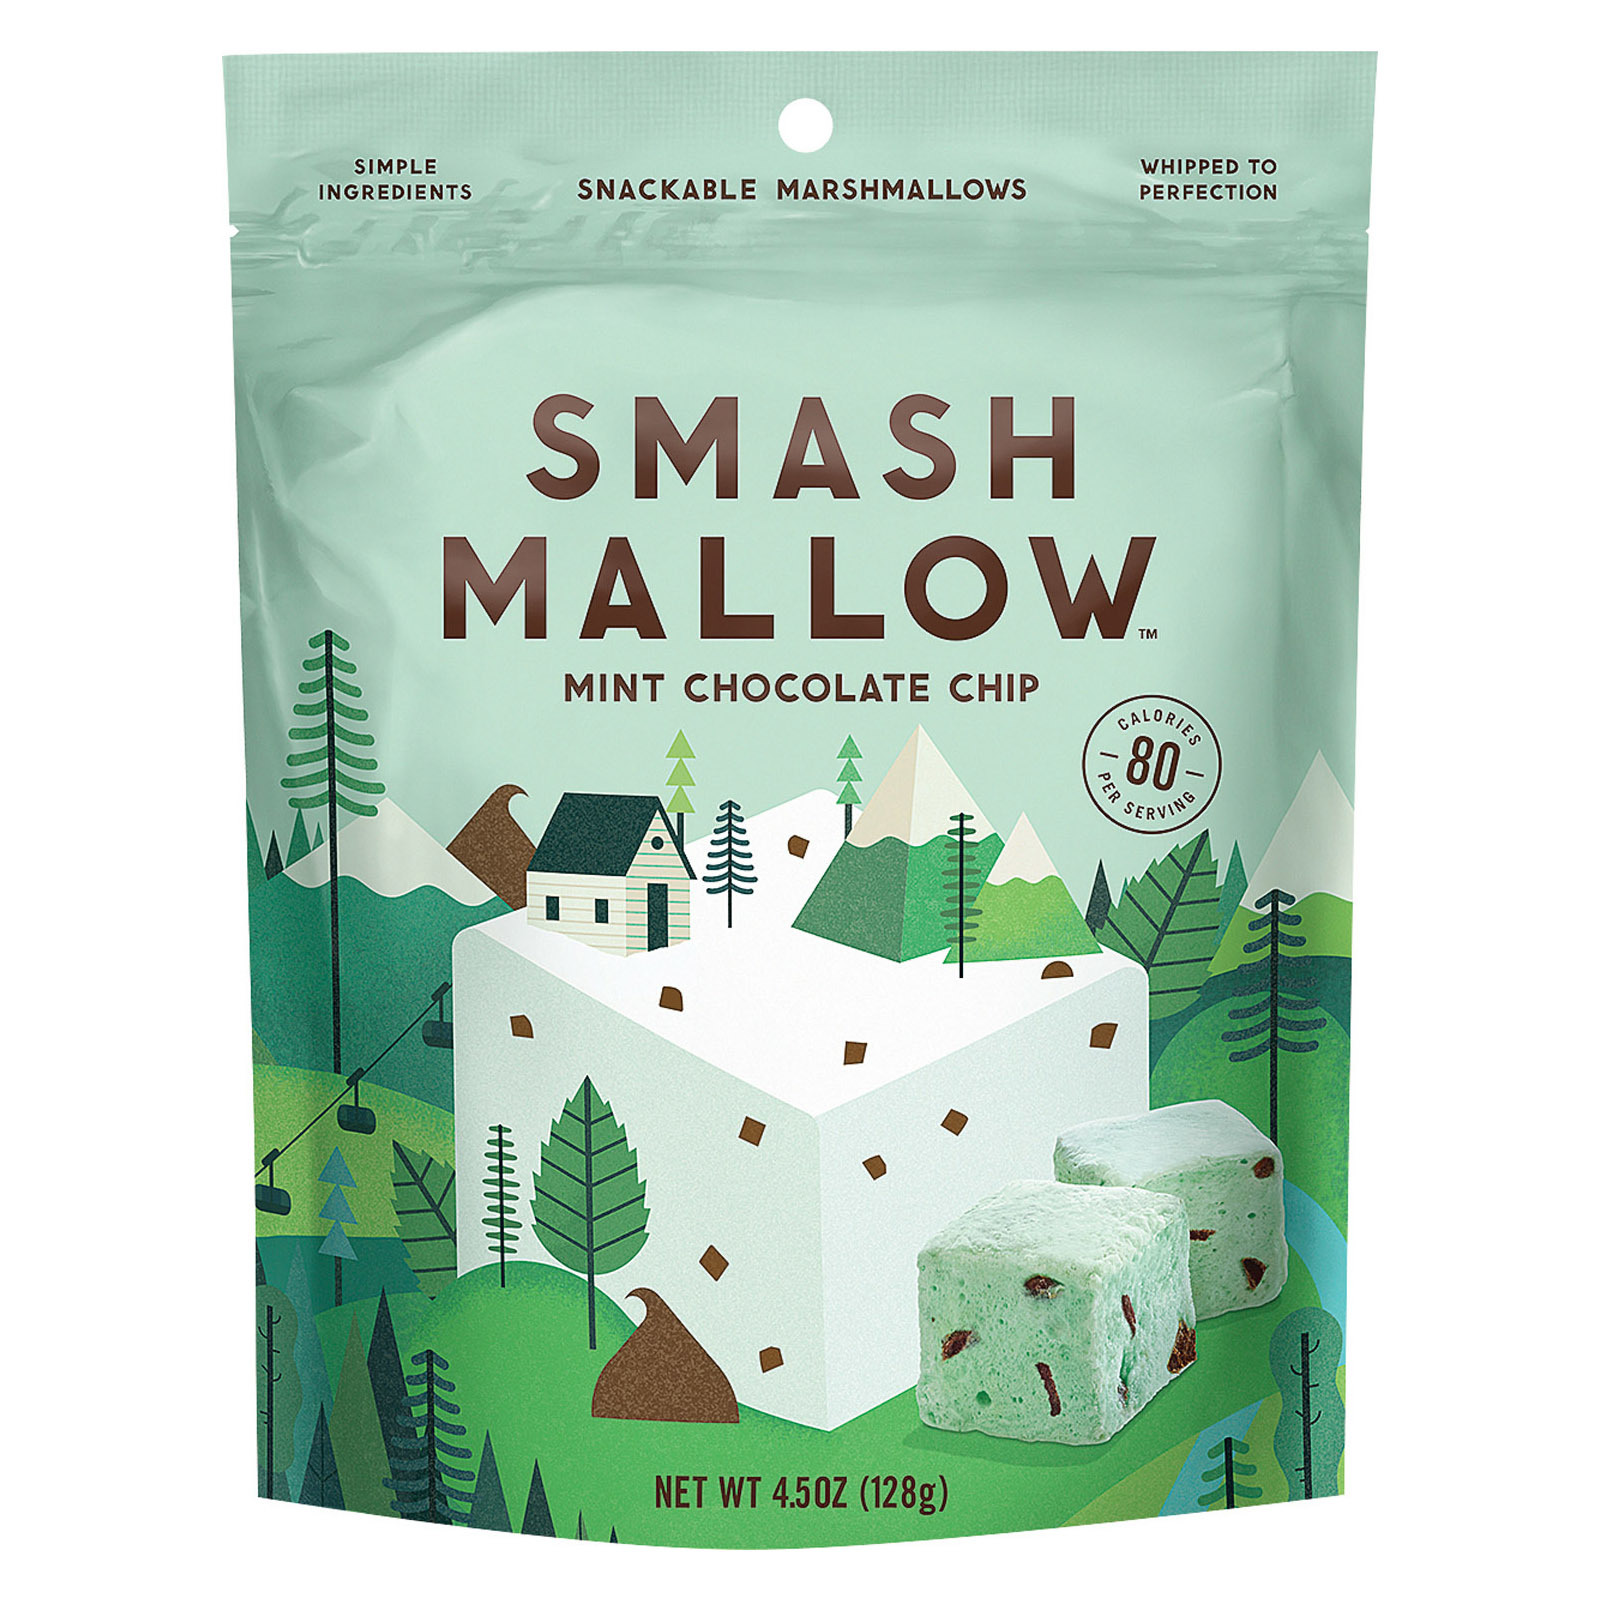 Smashmallow Snackable Marshmallows - Mint Chocolate Chip - Case of 12 - 4.5 oz